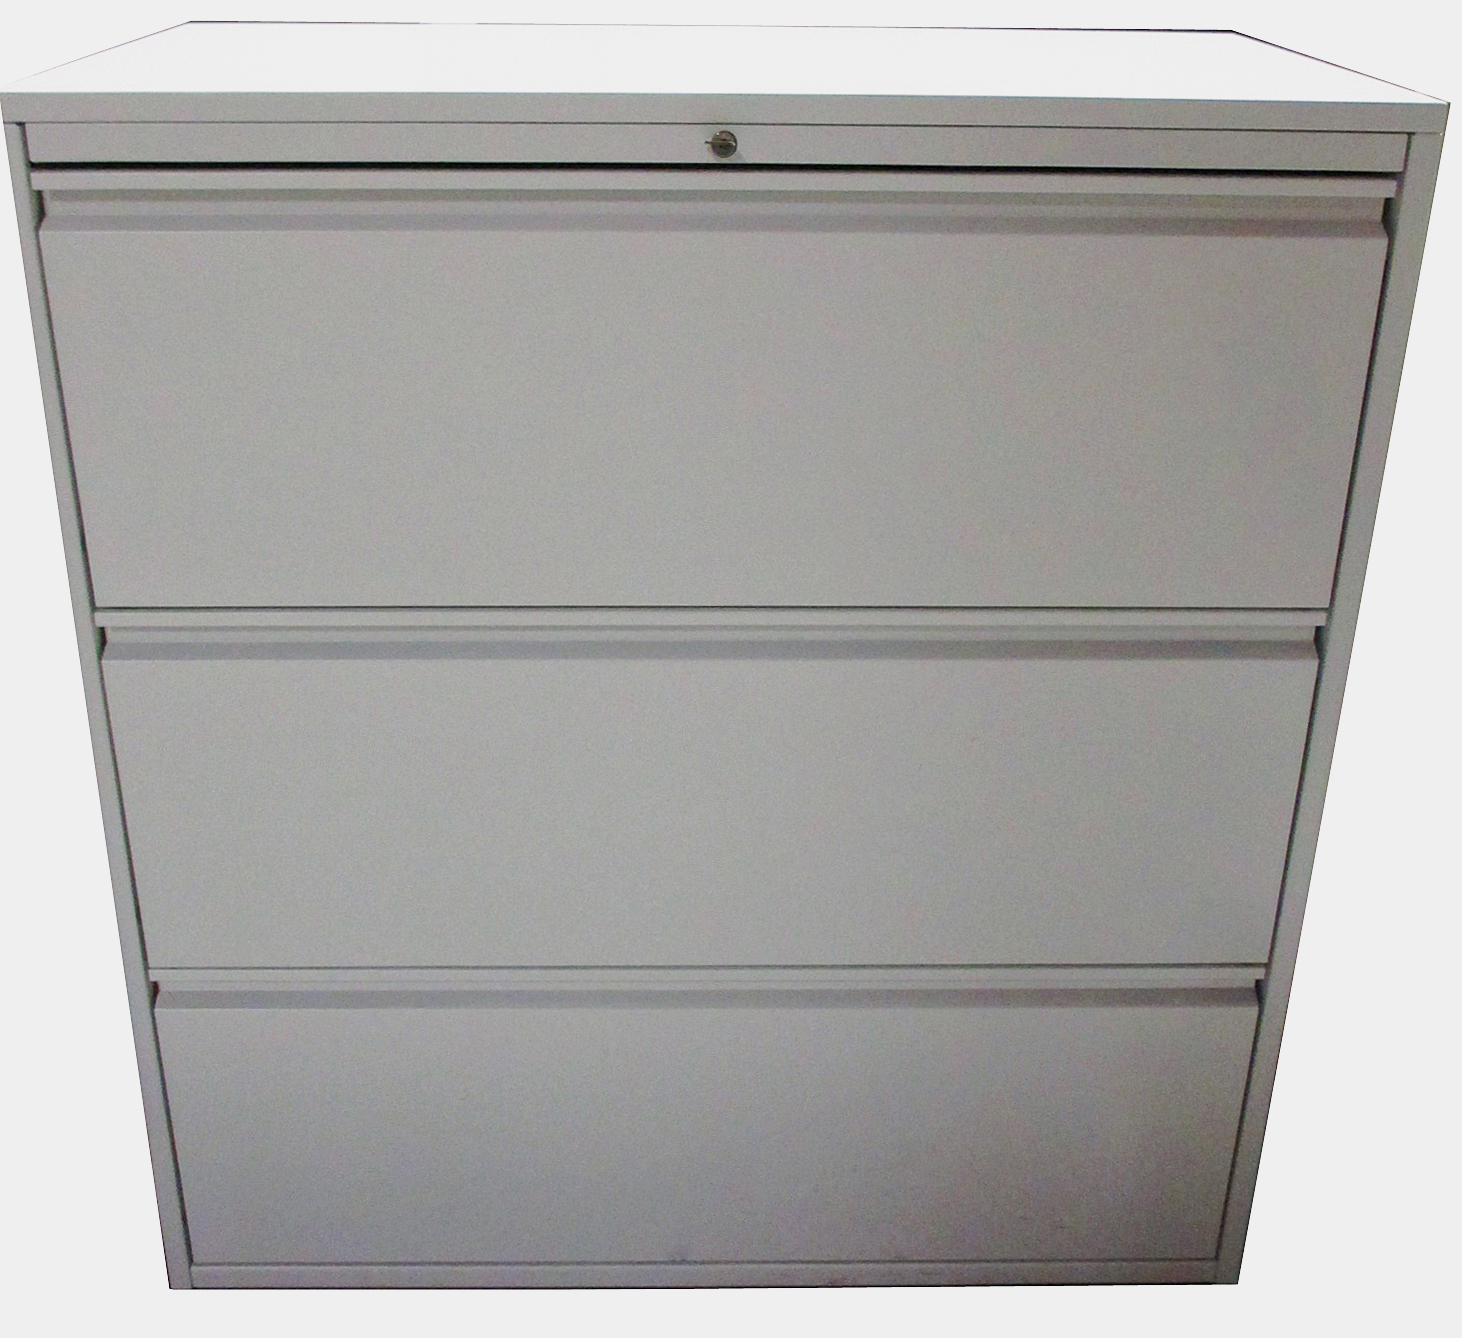 Used Office Furniture : 3 Drawer 36″ Lateral File - Cream by Haworth on